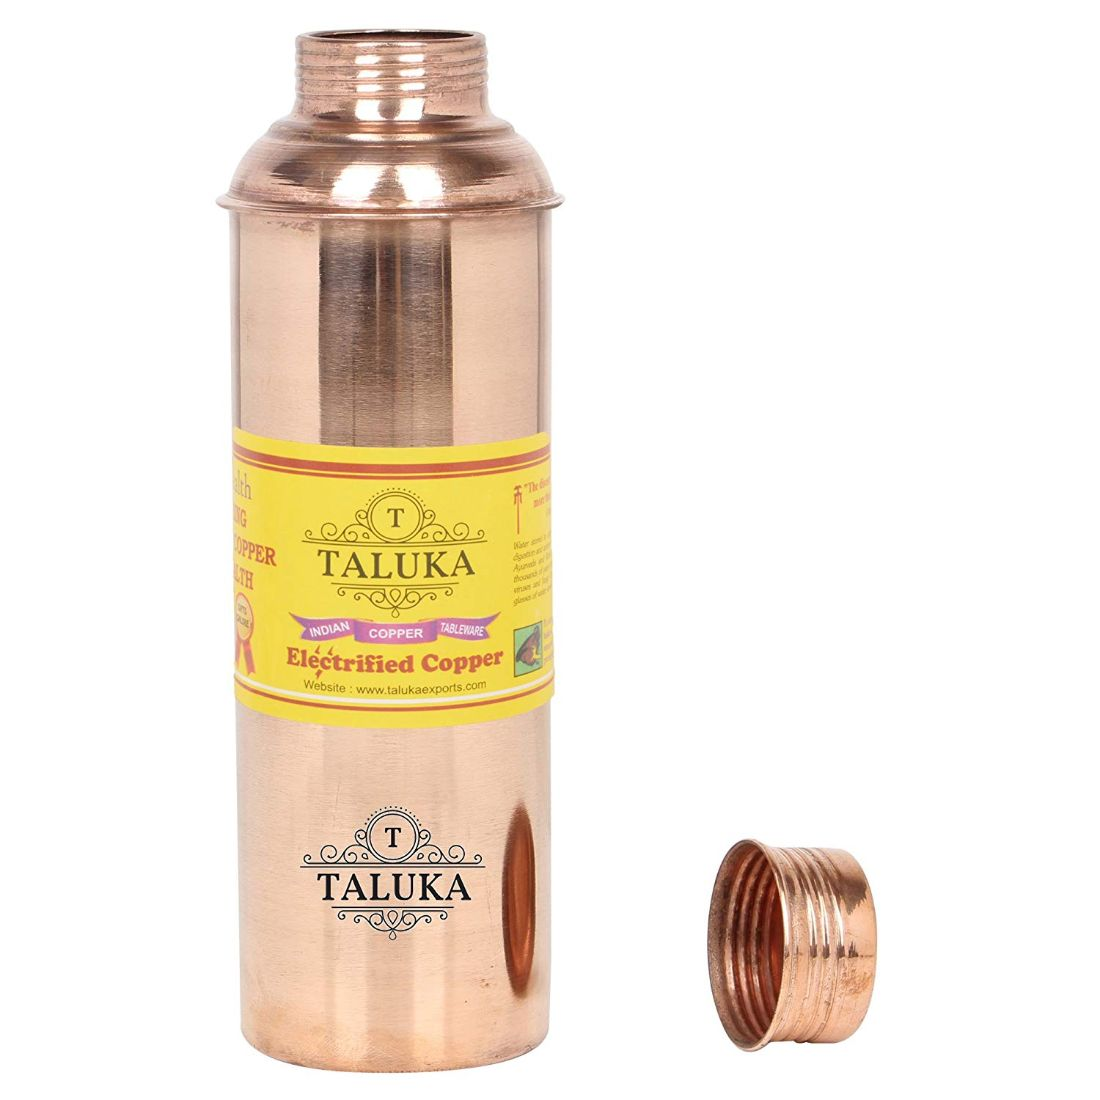 Belly Design Copper Water Pot Dispenser 16 Liter With 1 PC Copper Bottle 800 ML for use Storage Drinking Water